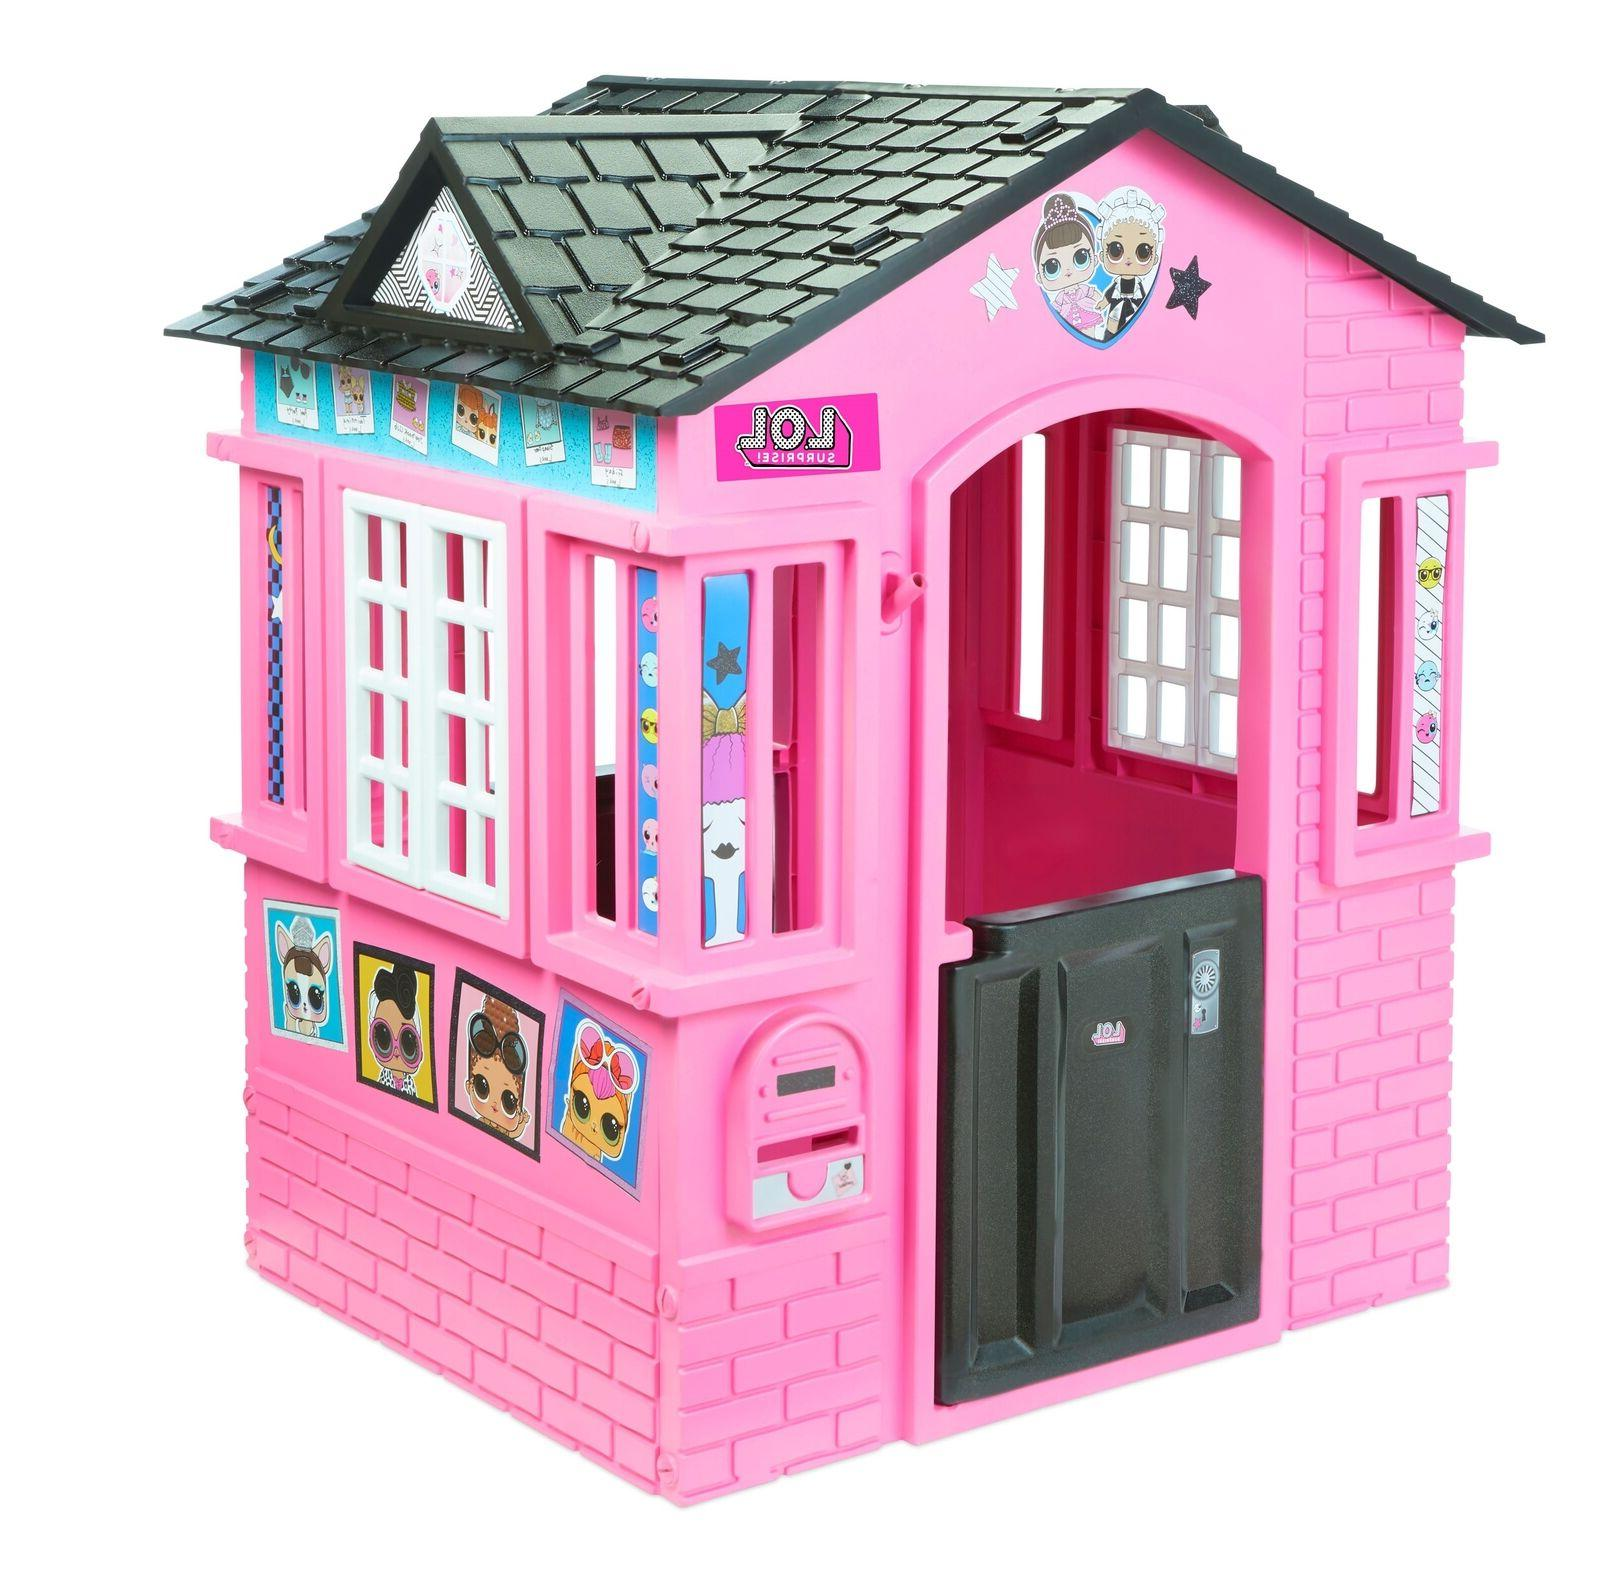 Outdoor Playhouse For Kids Cottage Surprise